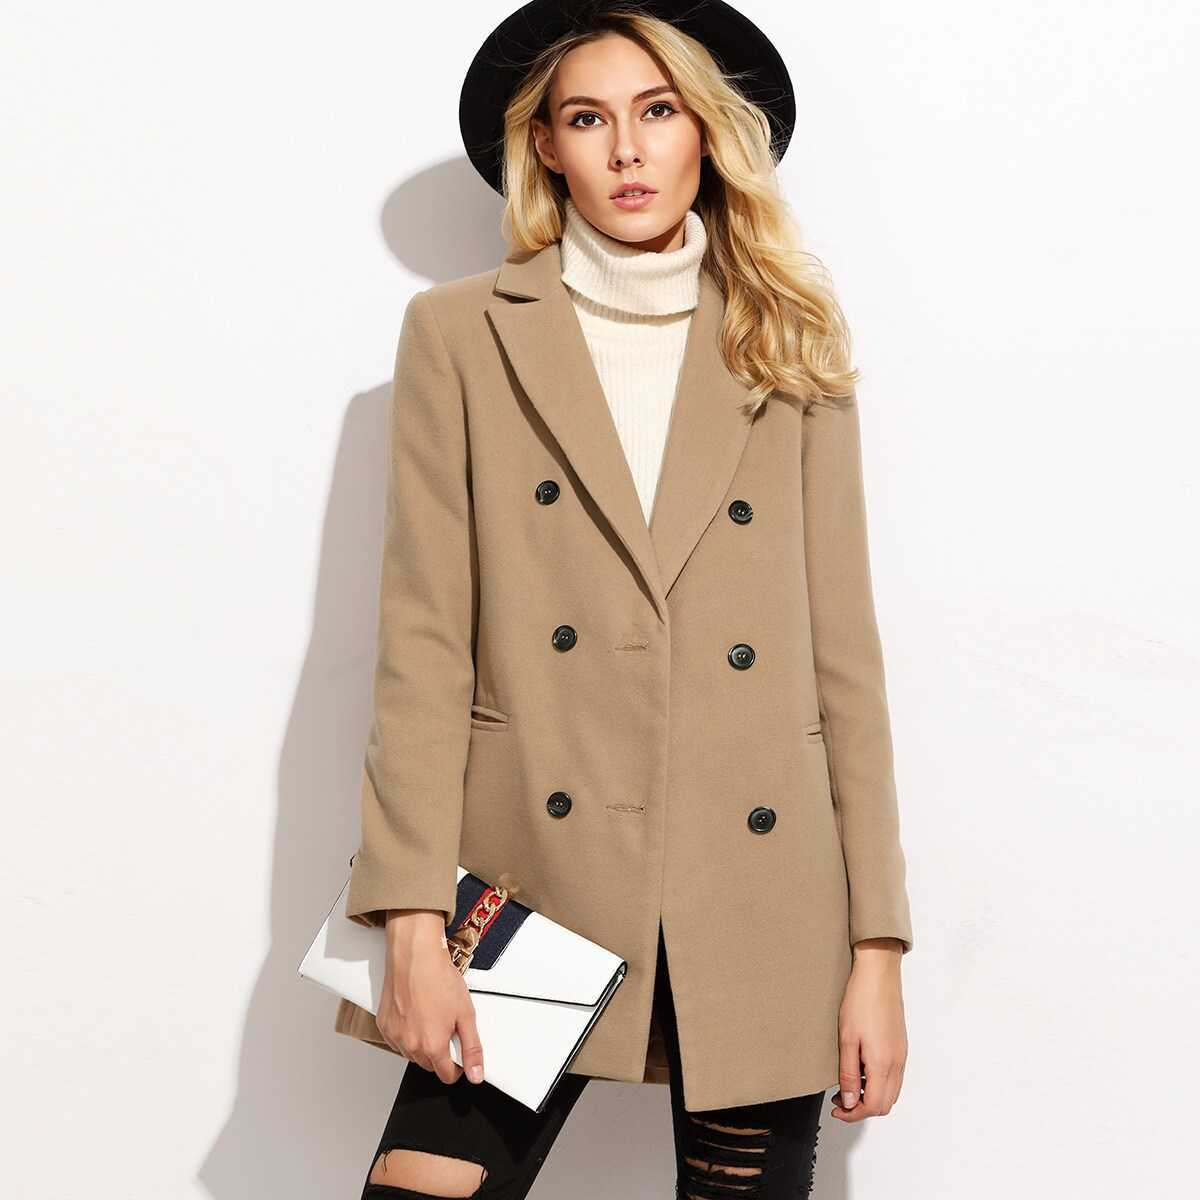 Camel Double Breasted Coat With Welt Pocket in Camel by ROMWE on GOOFASH